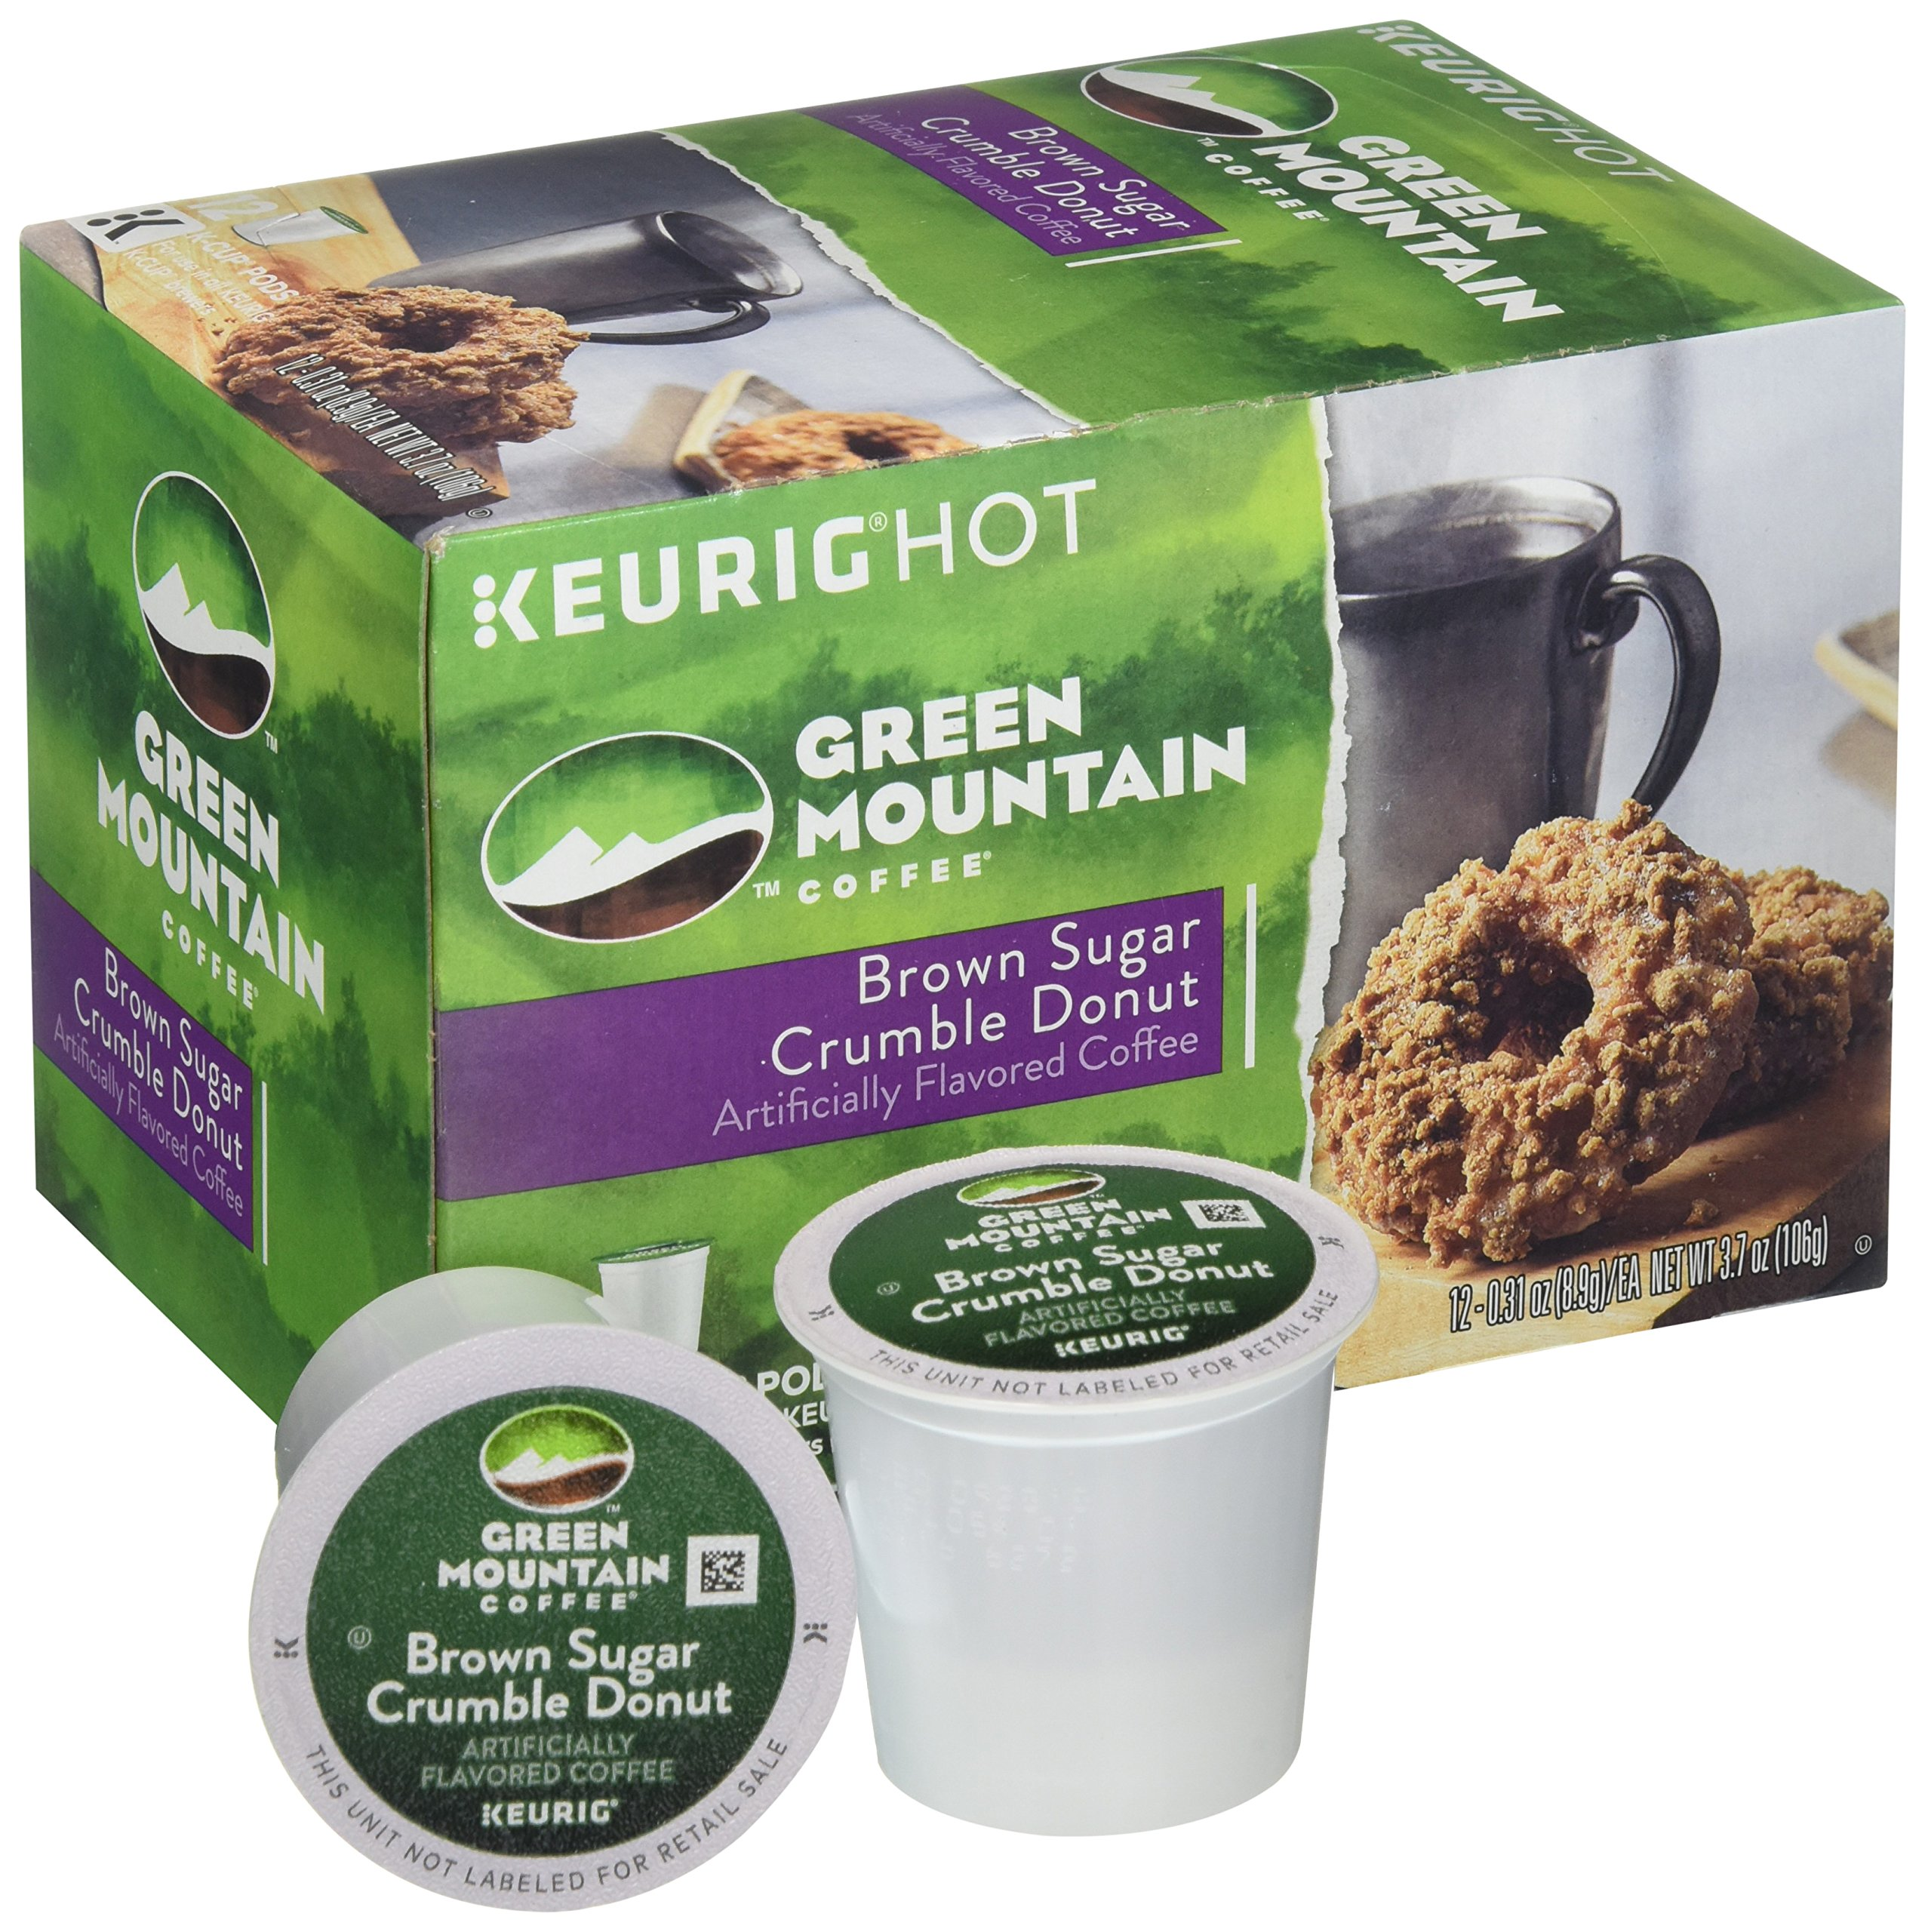 Keurig Green Mountain Coffee Roasters Brown Sugar Crumble Flavored Coffee (12 Recyclable K-Cup Pods)